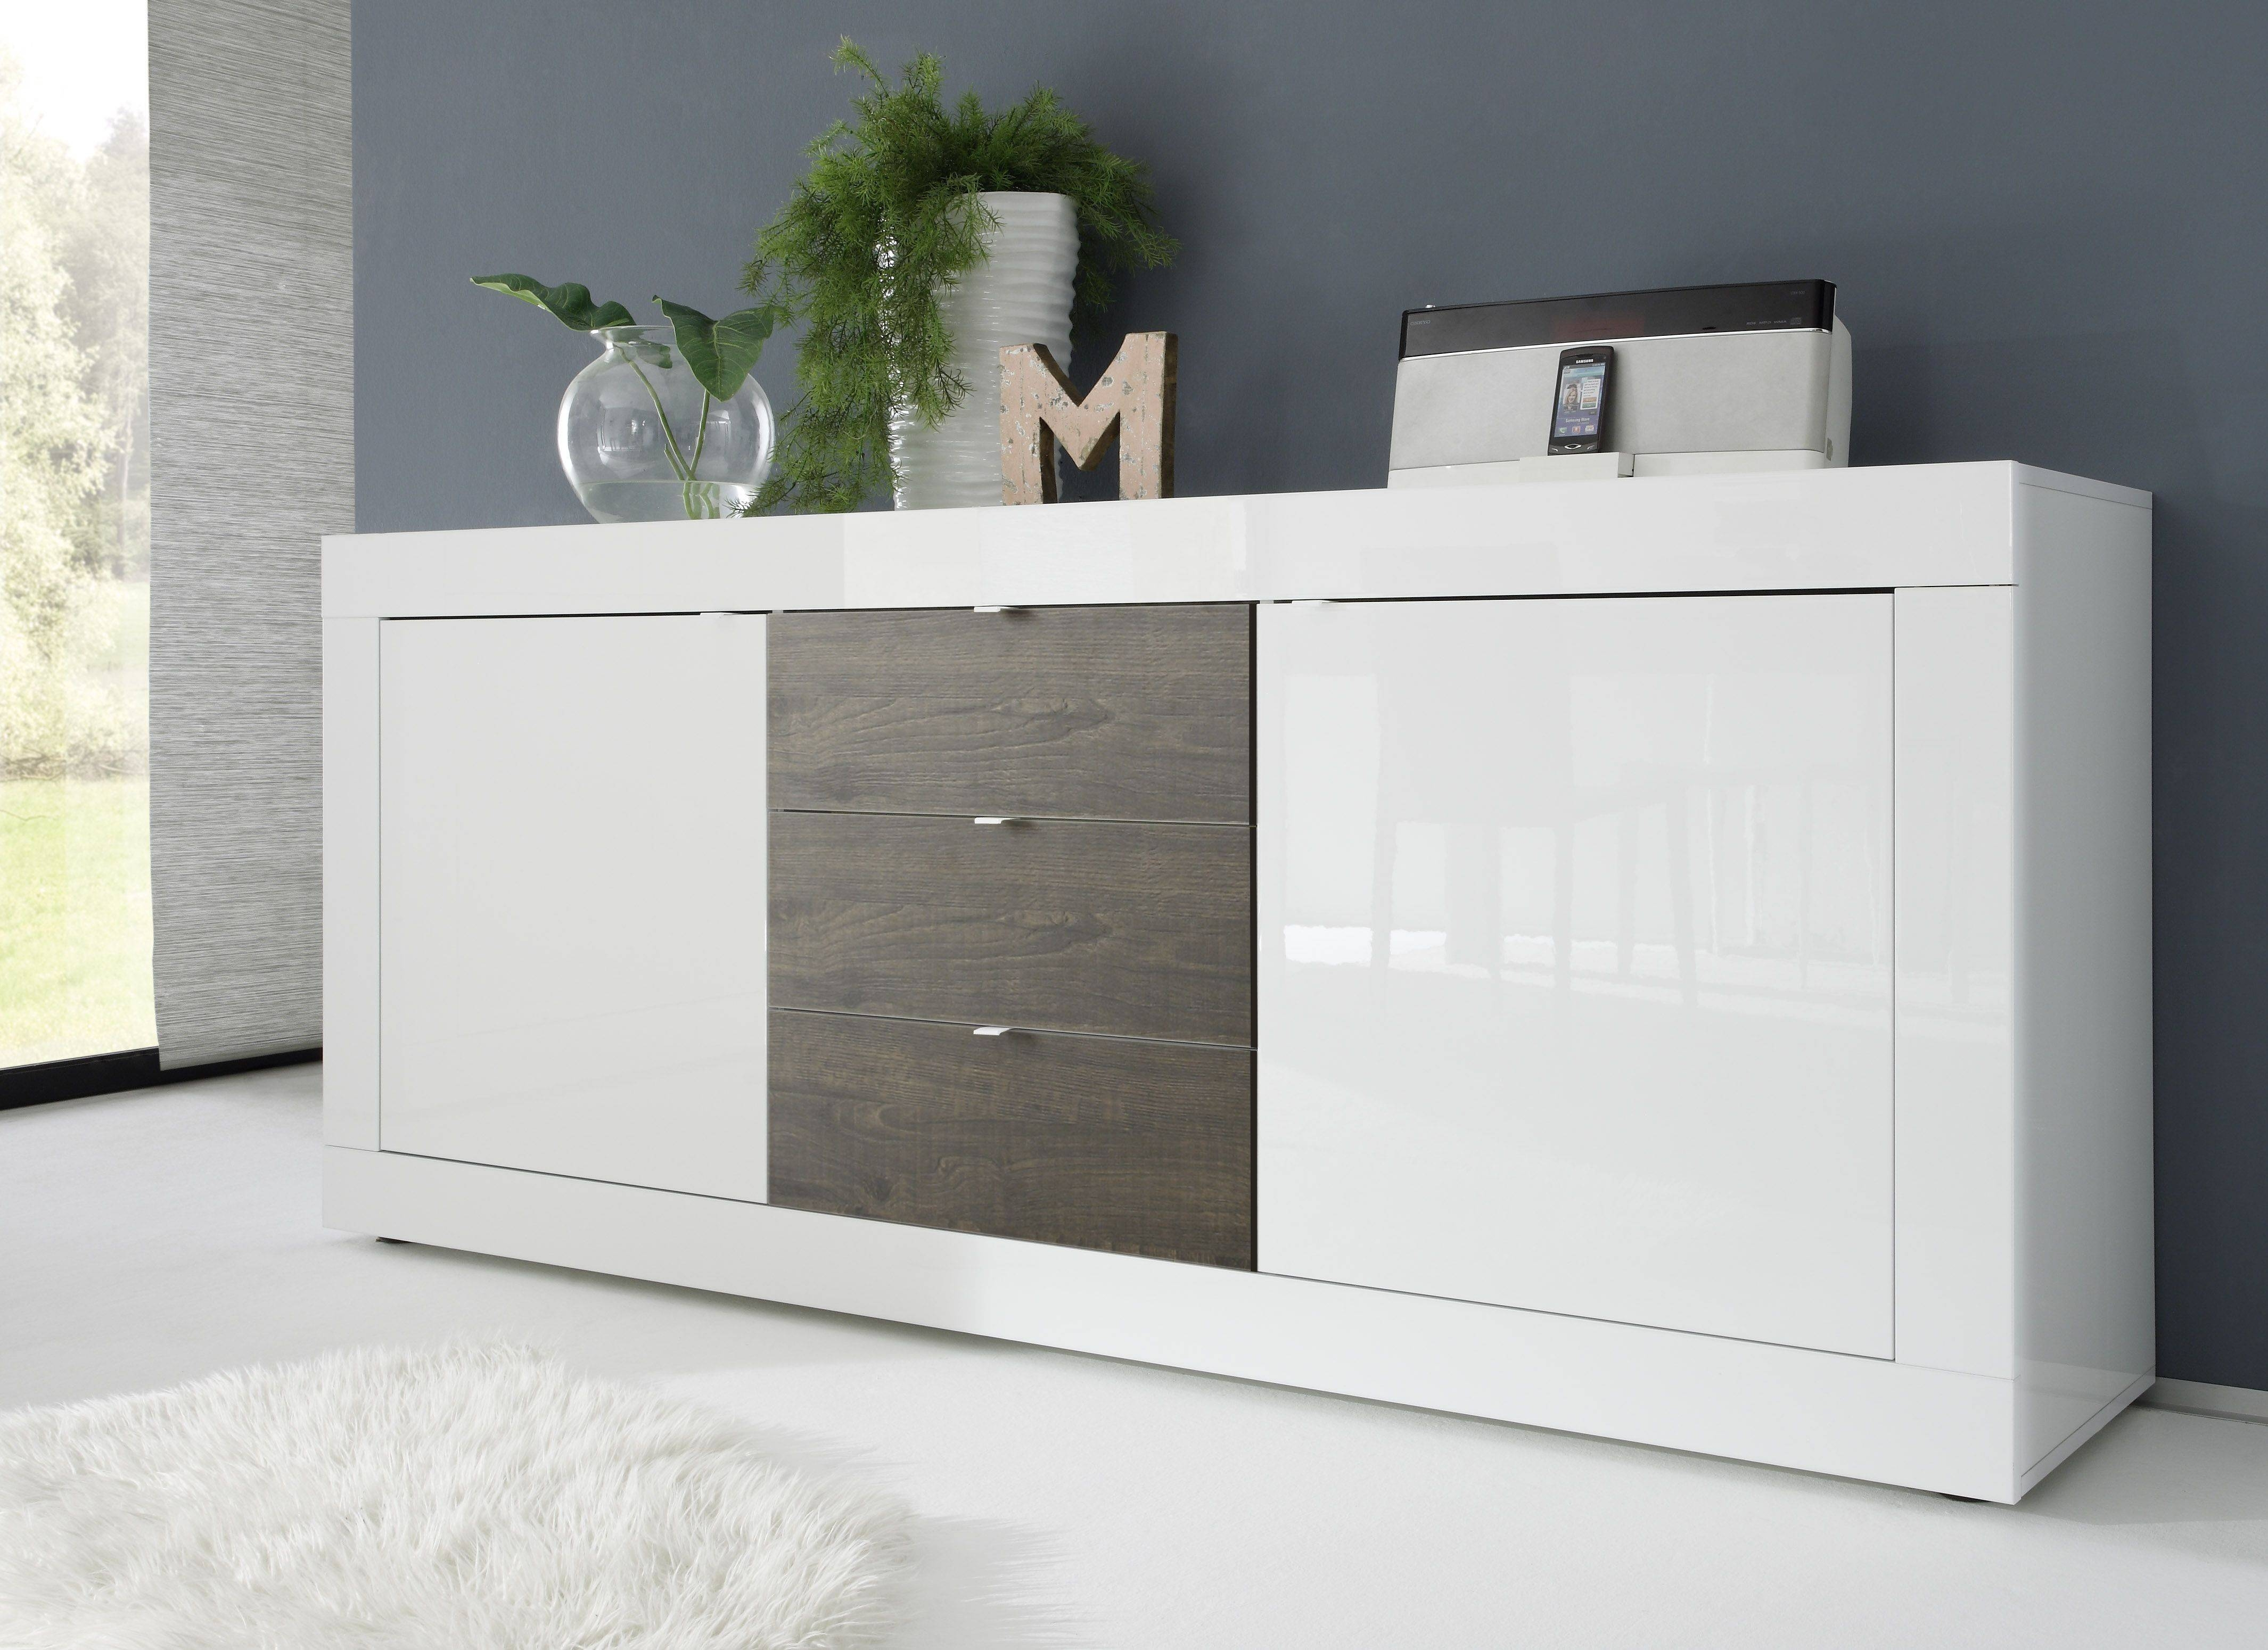 Dolcevita Ii White Gloss Sideboard – Sideboards – Sena Home Furniture In Cheap White High Gloss Sideboards (#6 of 15)